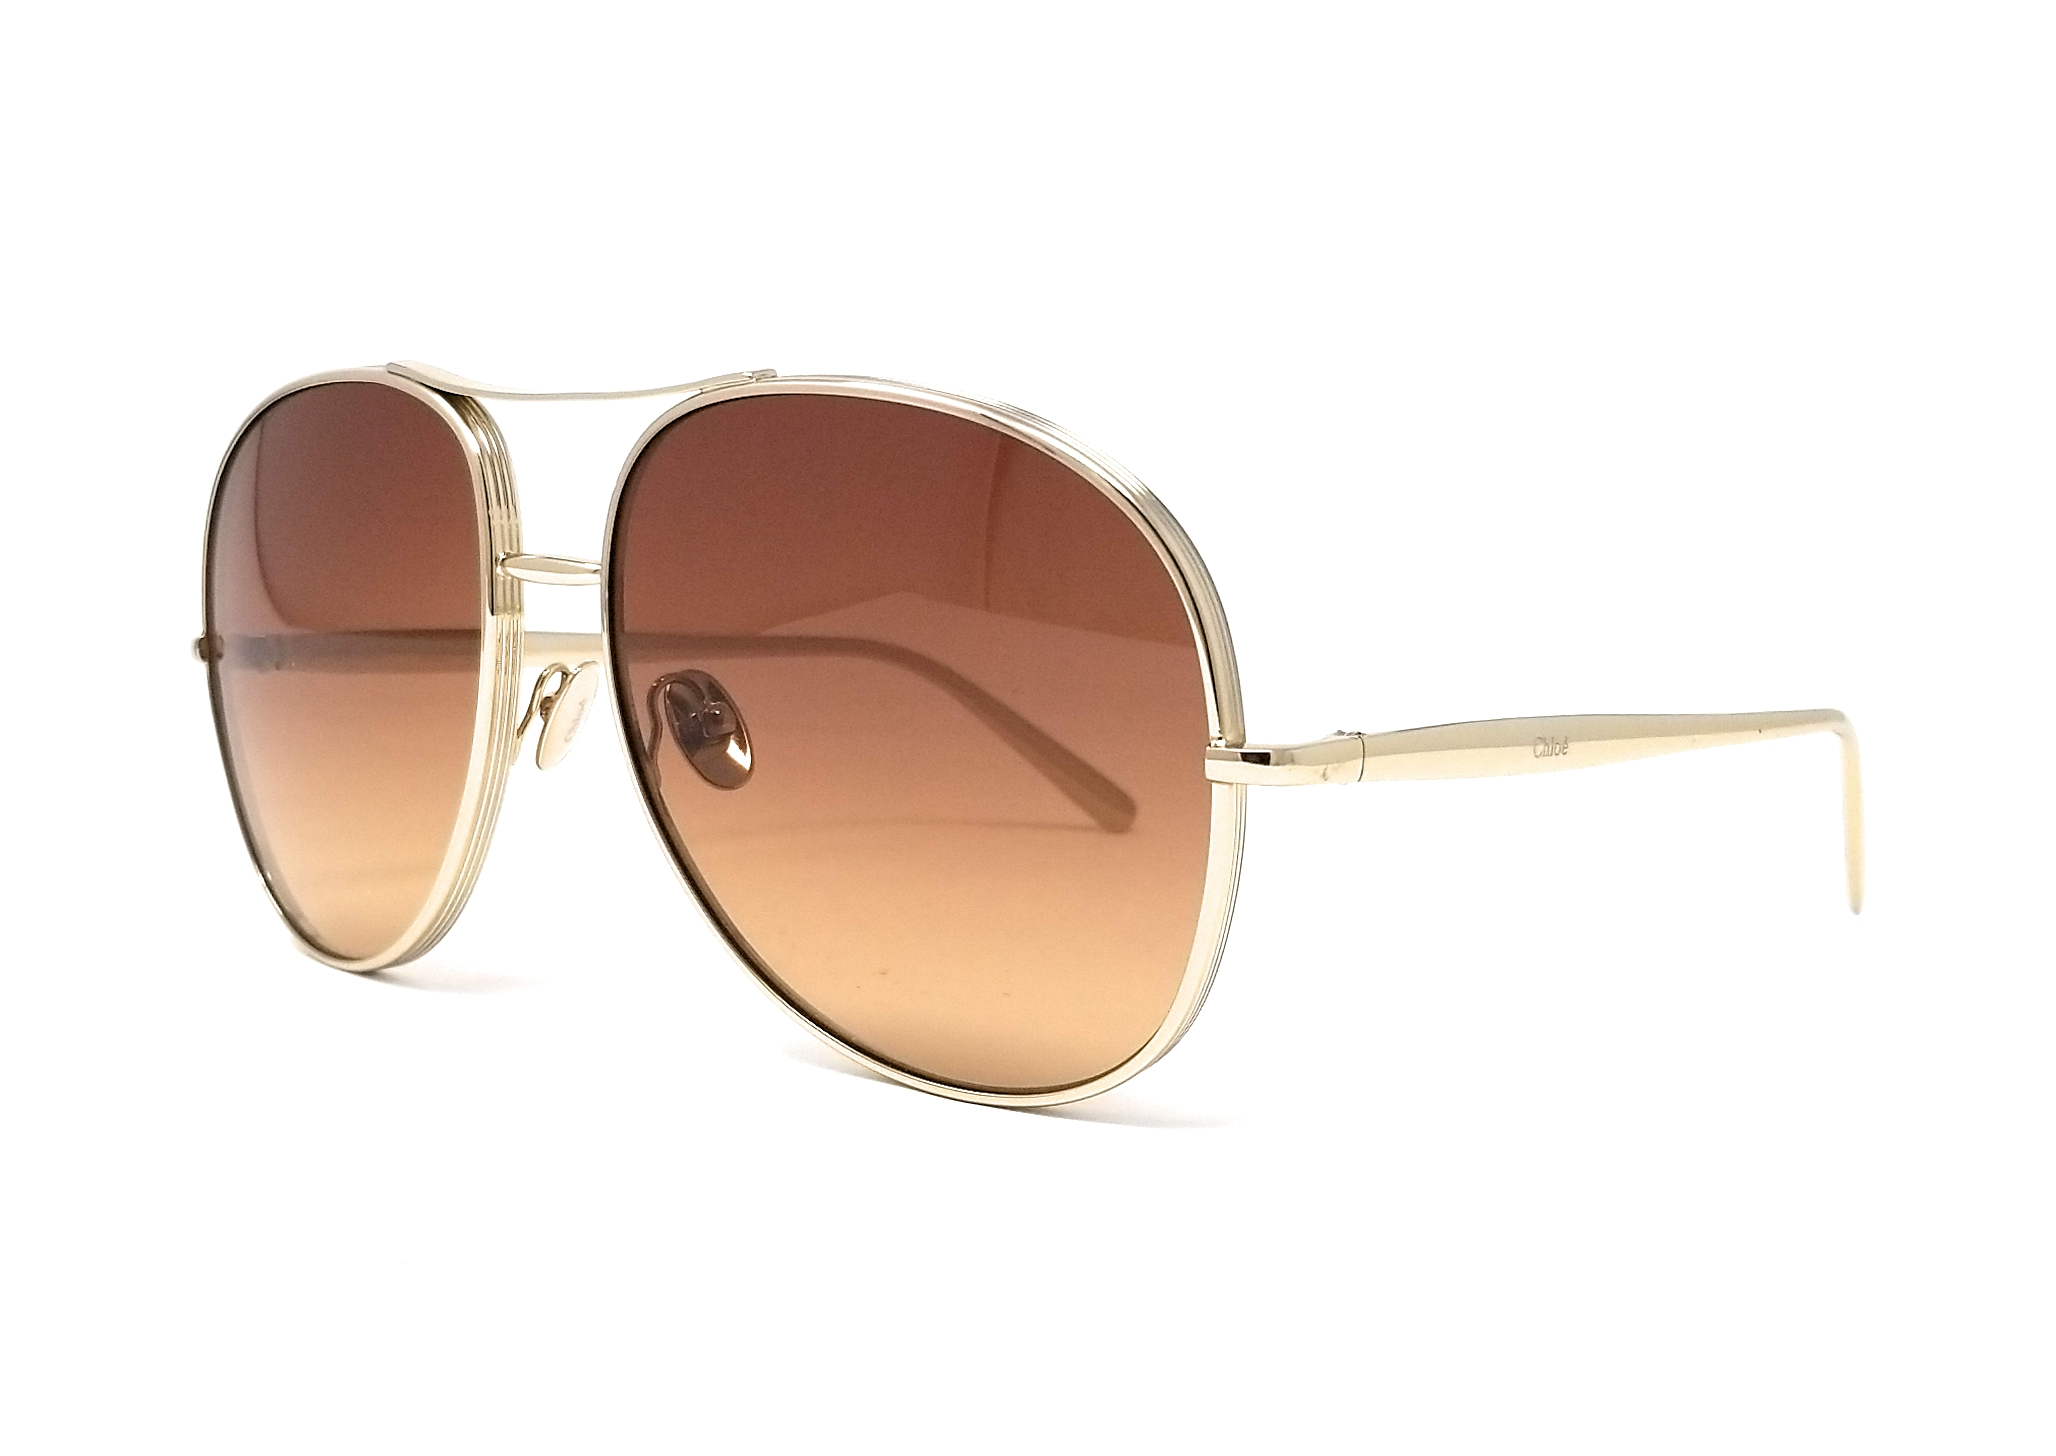 110bbf81a4f8 Details about CHLOE Sunglasses CE127S 743 Light Gold Brown Aviator 61x16x135